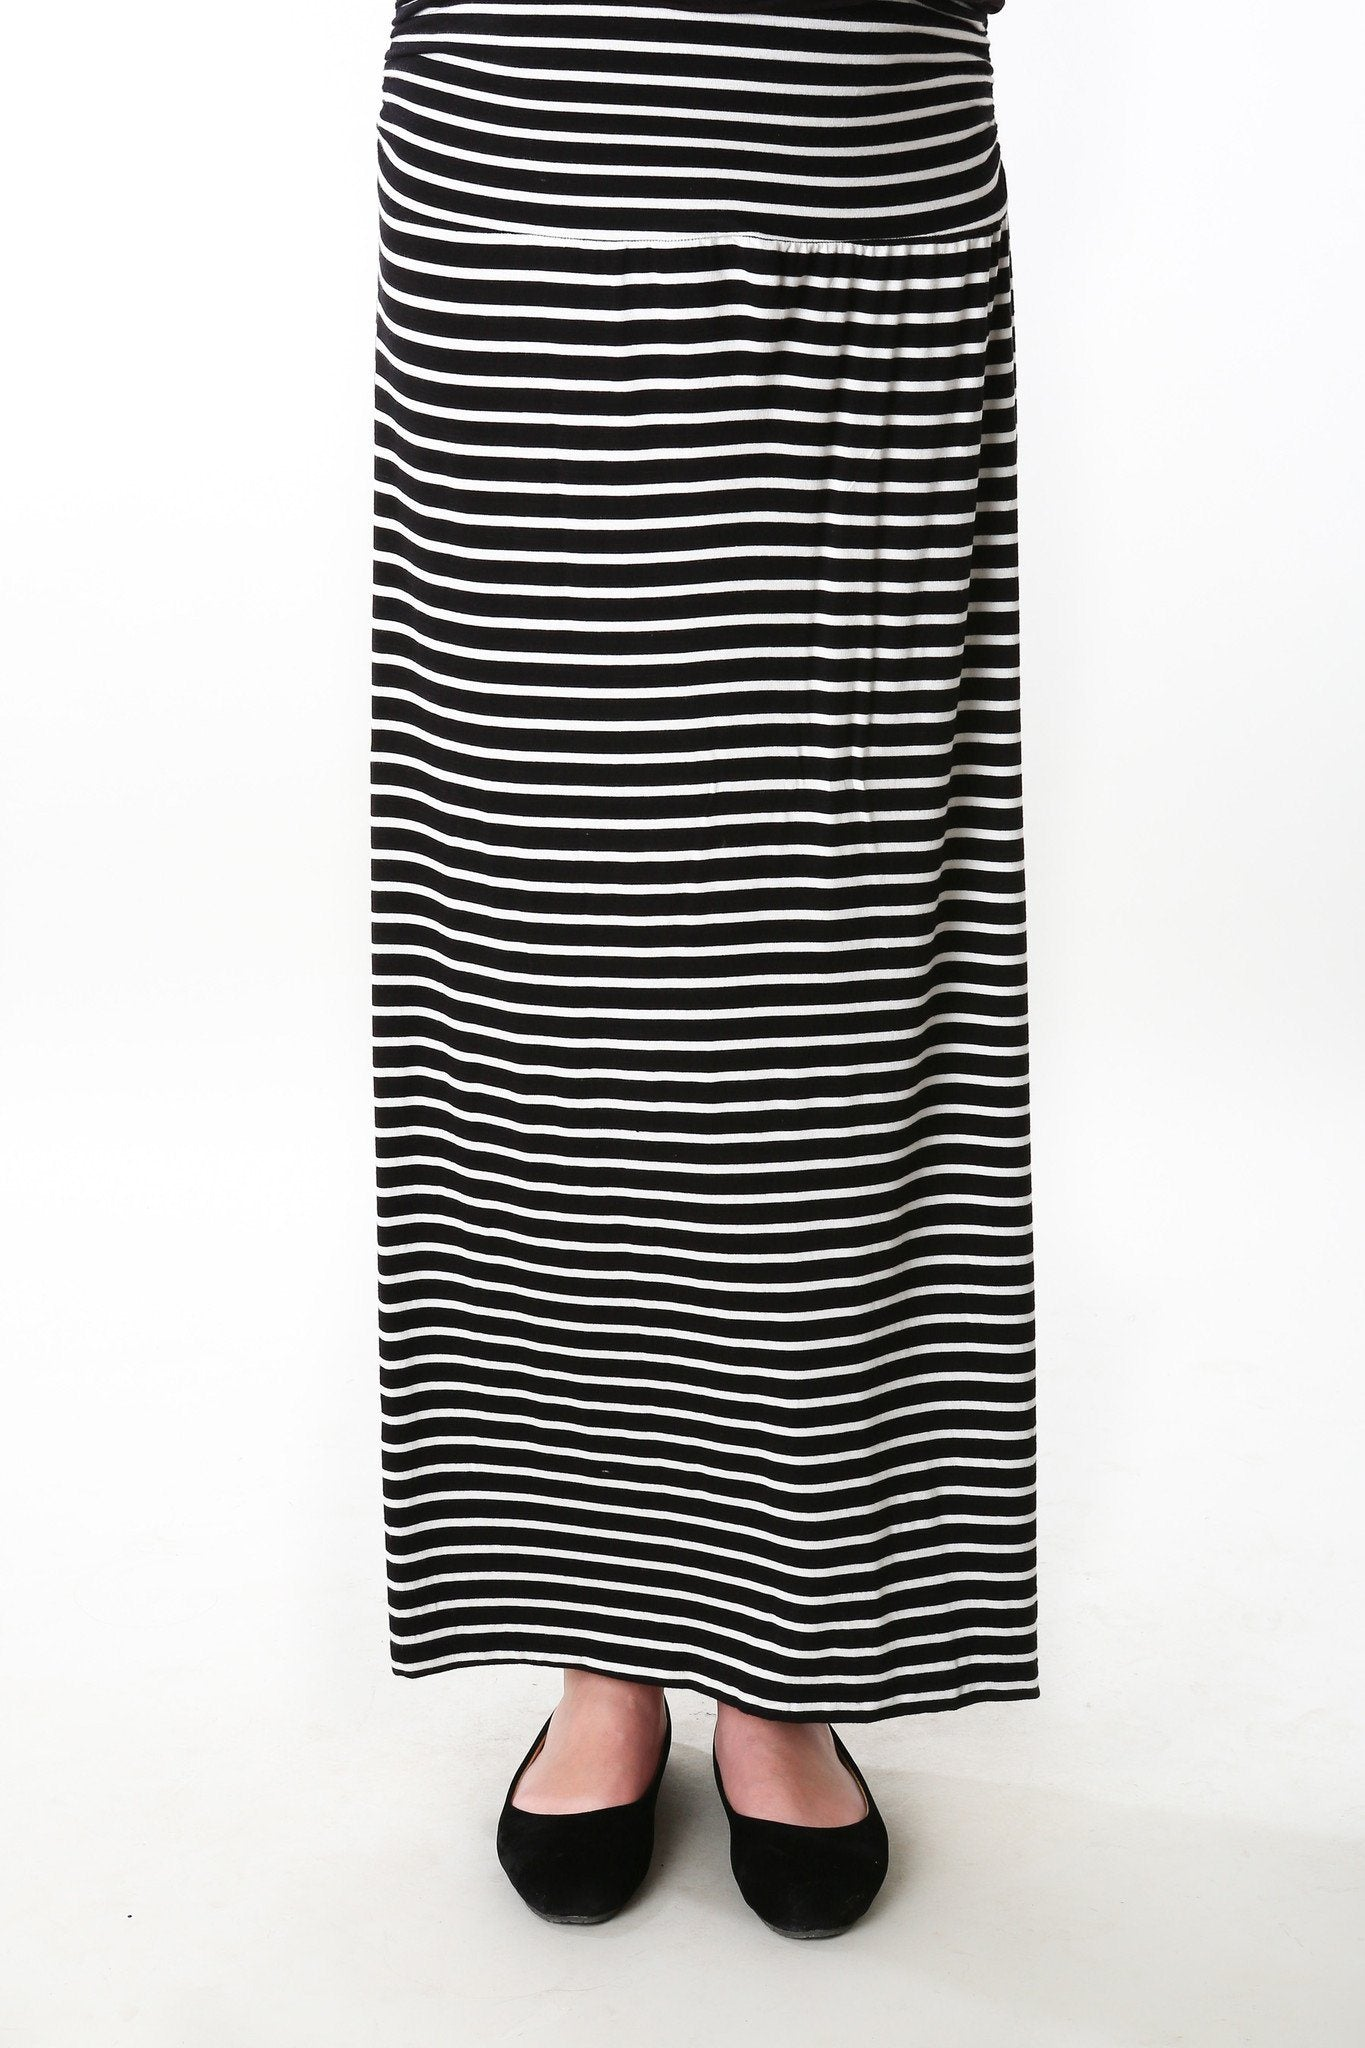 Striped A-Line Maternity Skirt - MOMZJOY.COM - 5